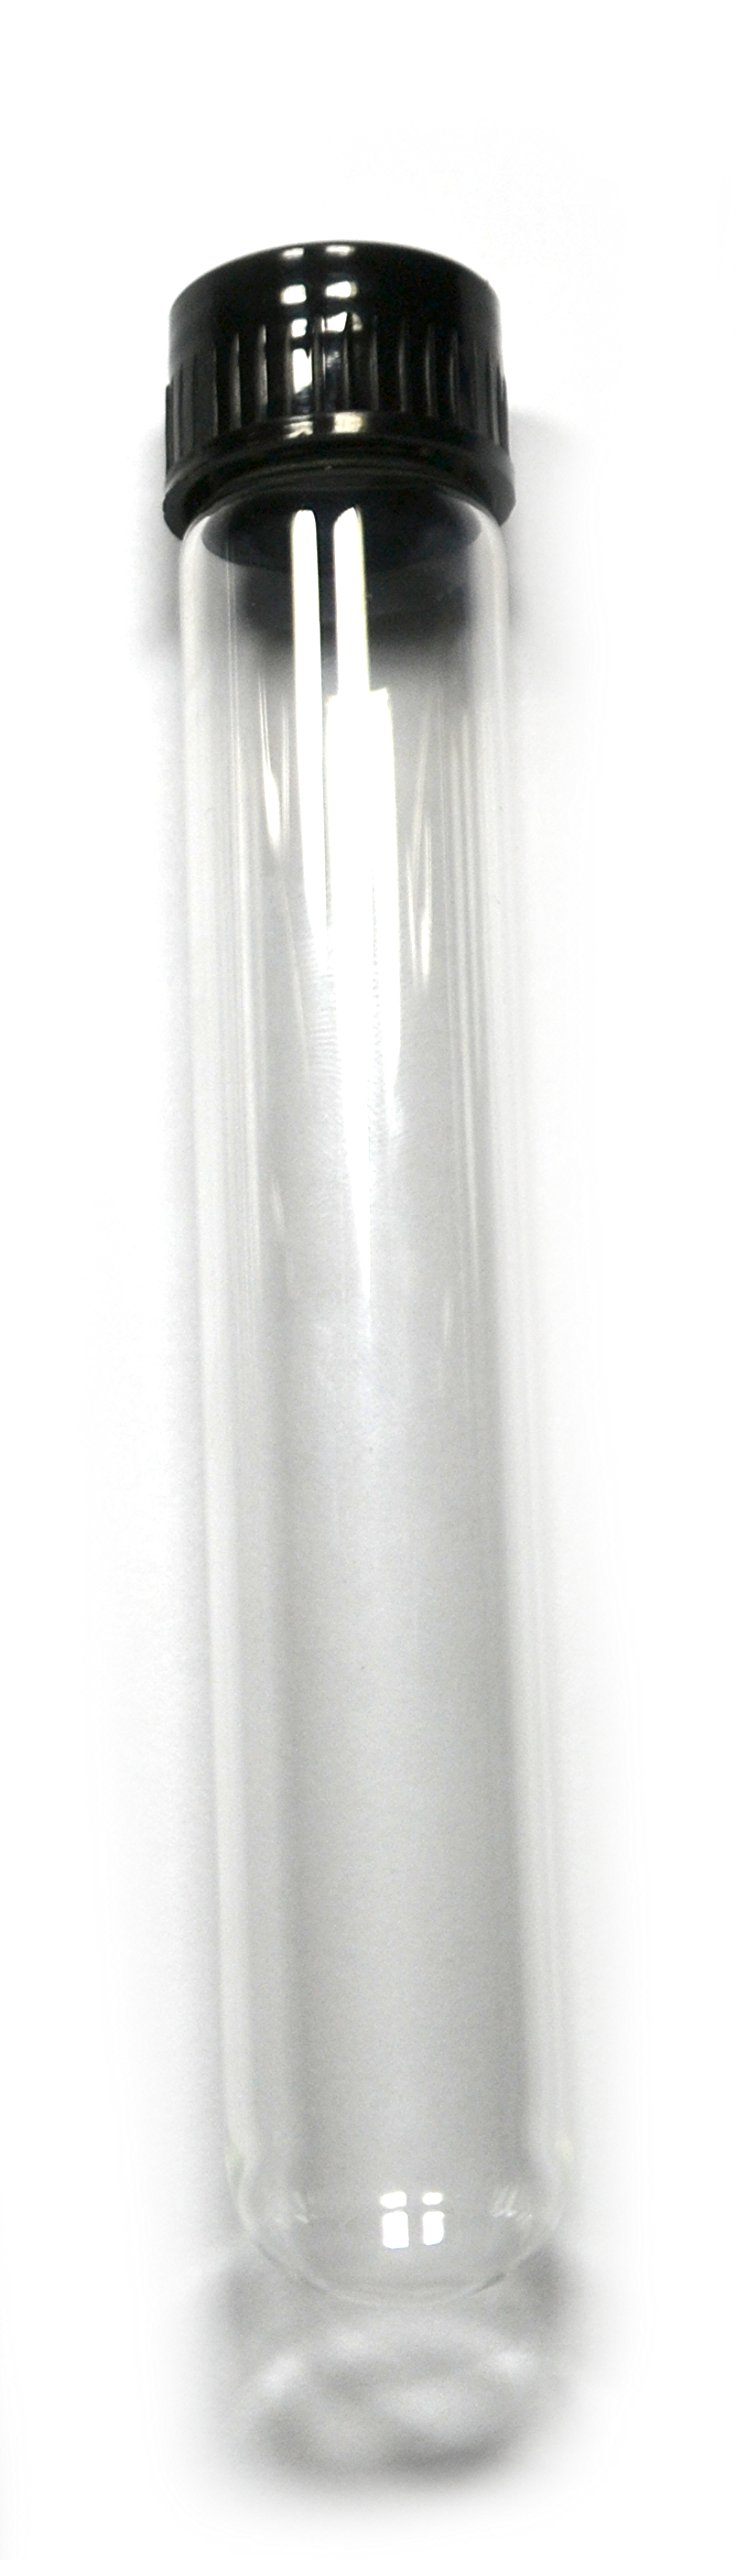 Eisco Labs Test Tube with Cap 25 x 150mm Approx (6'' Height) Pack of 12